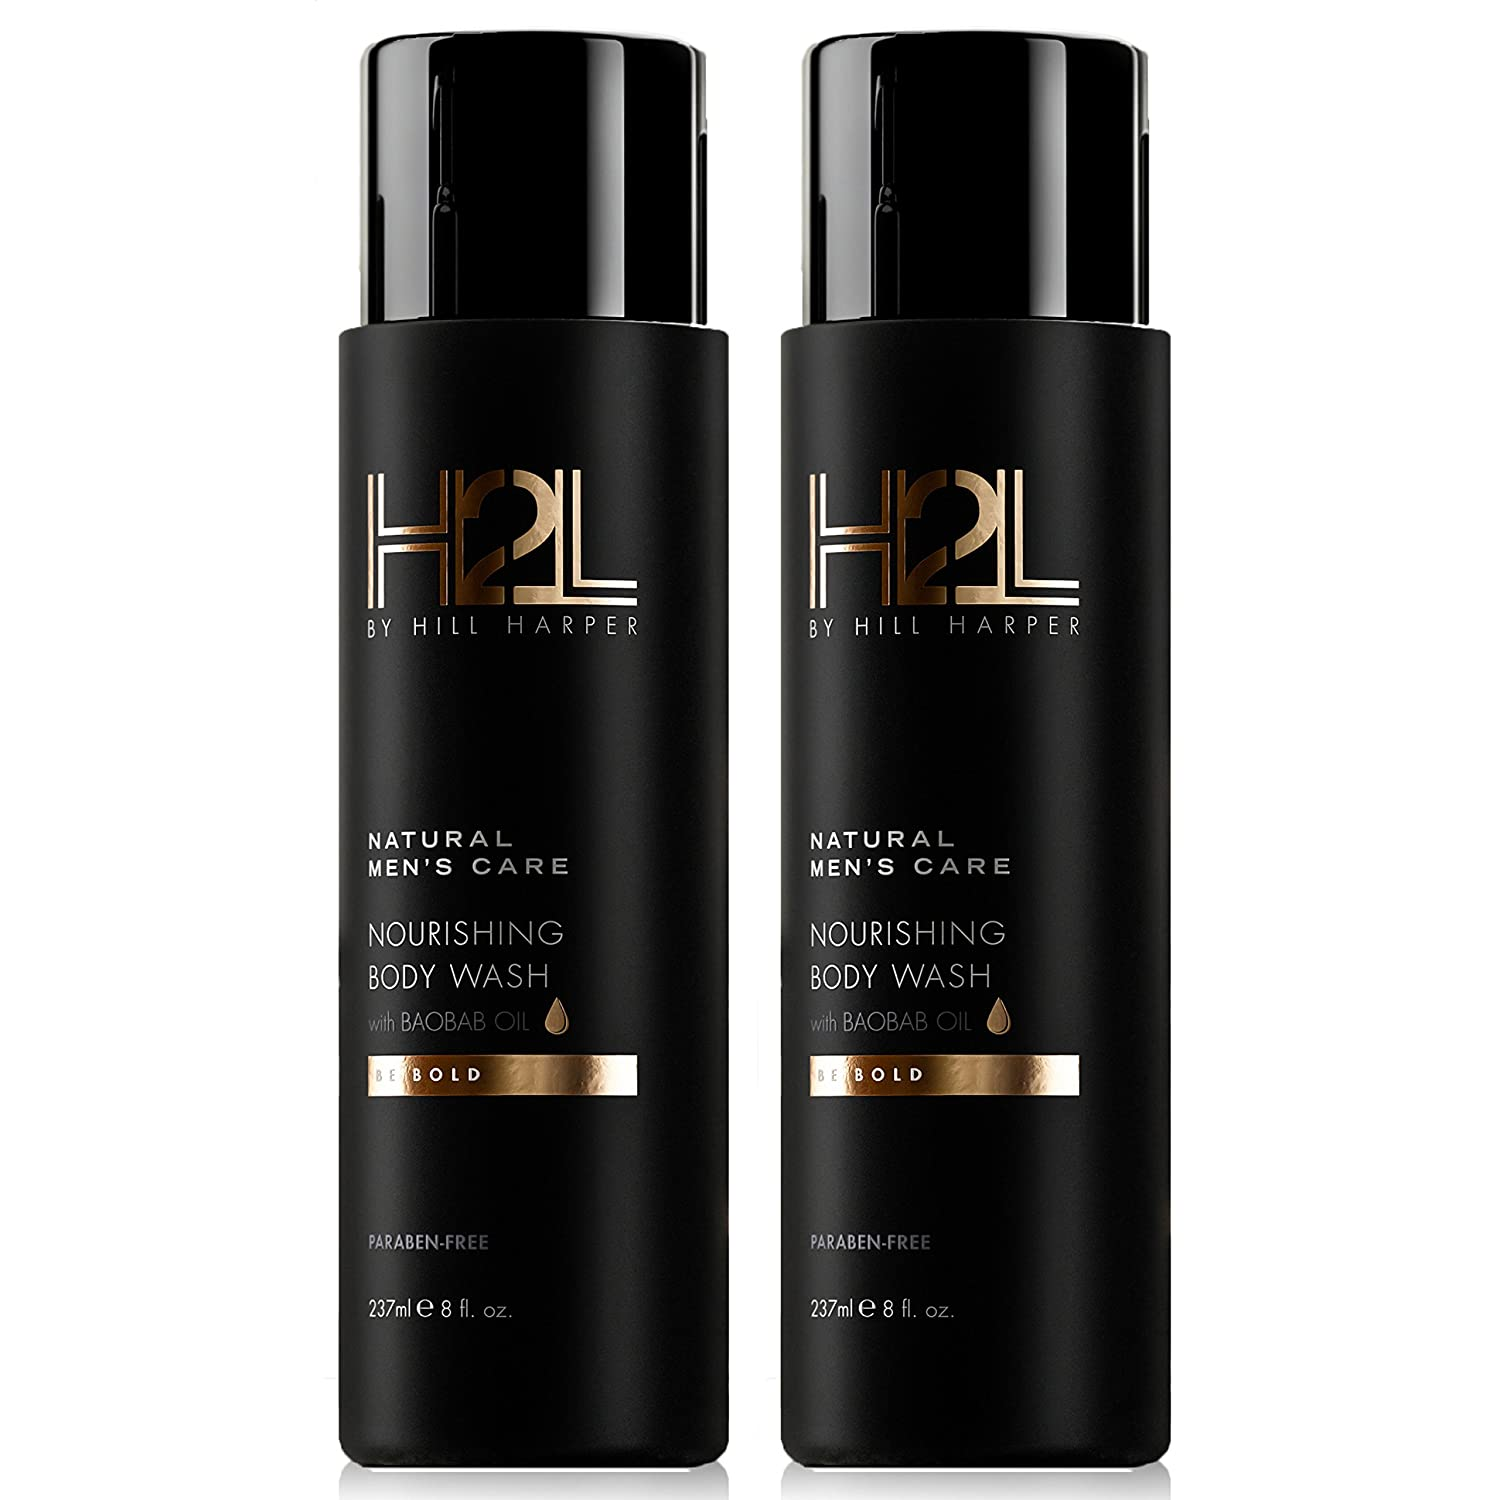 H2L Premium Nourishing Body Wash - With Baobab, Sweet Almond, Avocado and Chia Seed Oils. For Men By Hill Harper (2 Bottles)